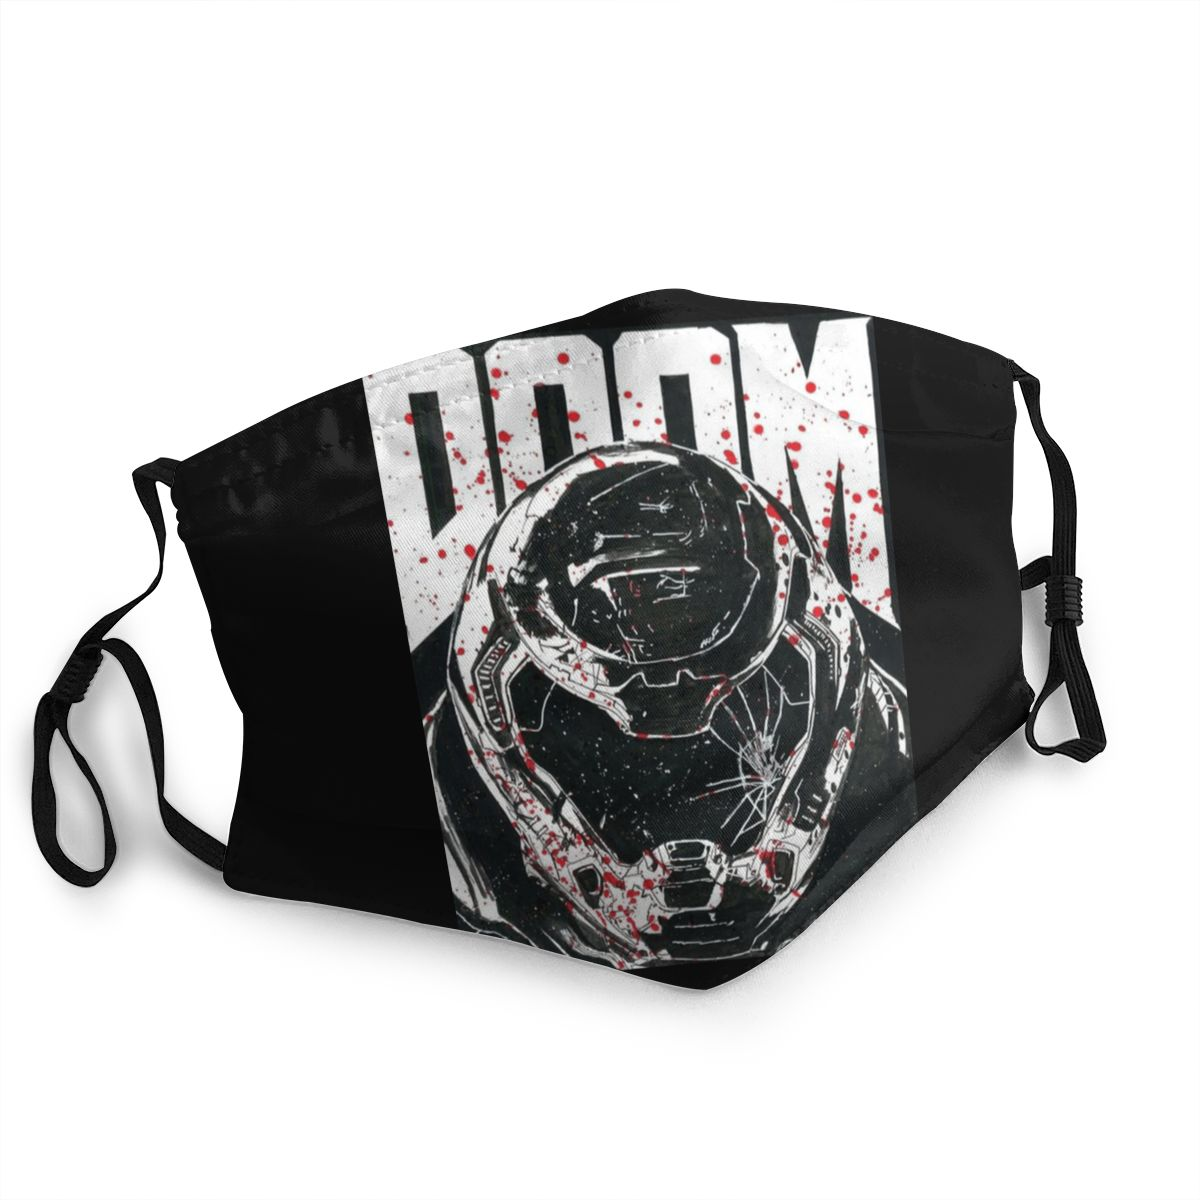 Doom Eternal Non-Disposable Mouth Face Mask Doomguy Cacodemon Anti Bacterial Dustproof Mask Protection Cover Respirator Muffle